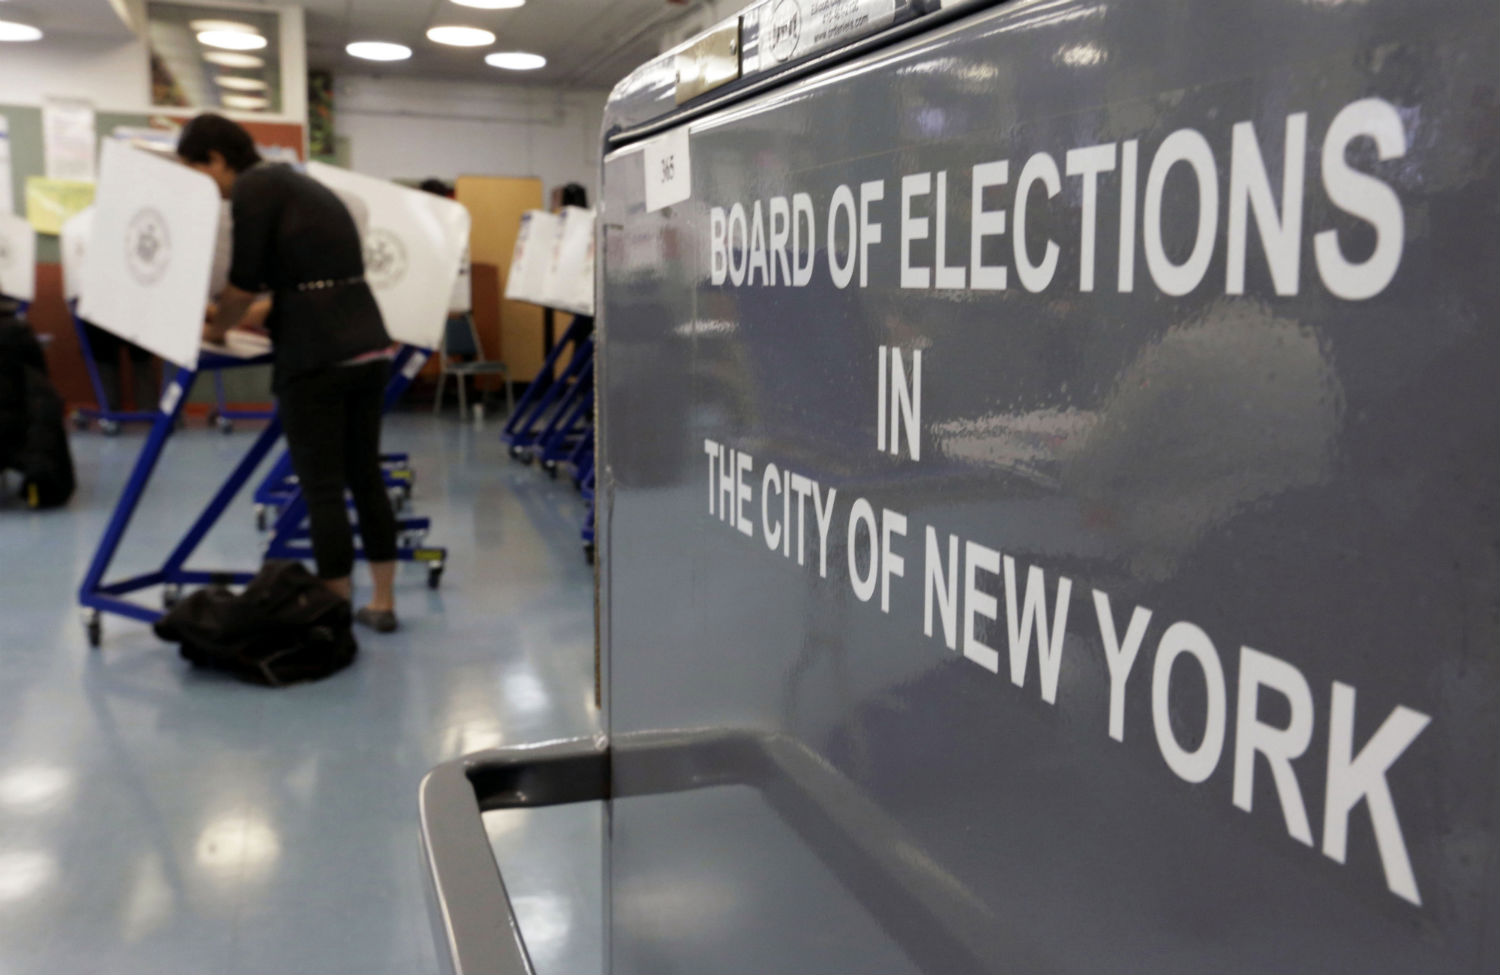 board of election in the city of new york sign